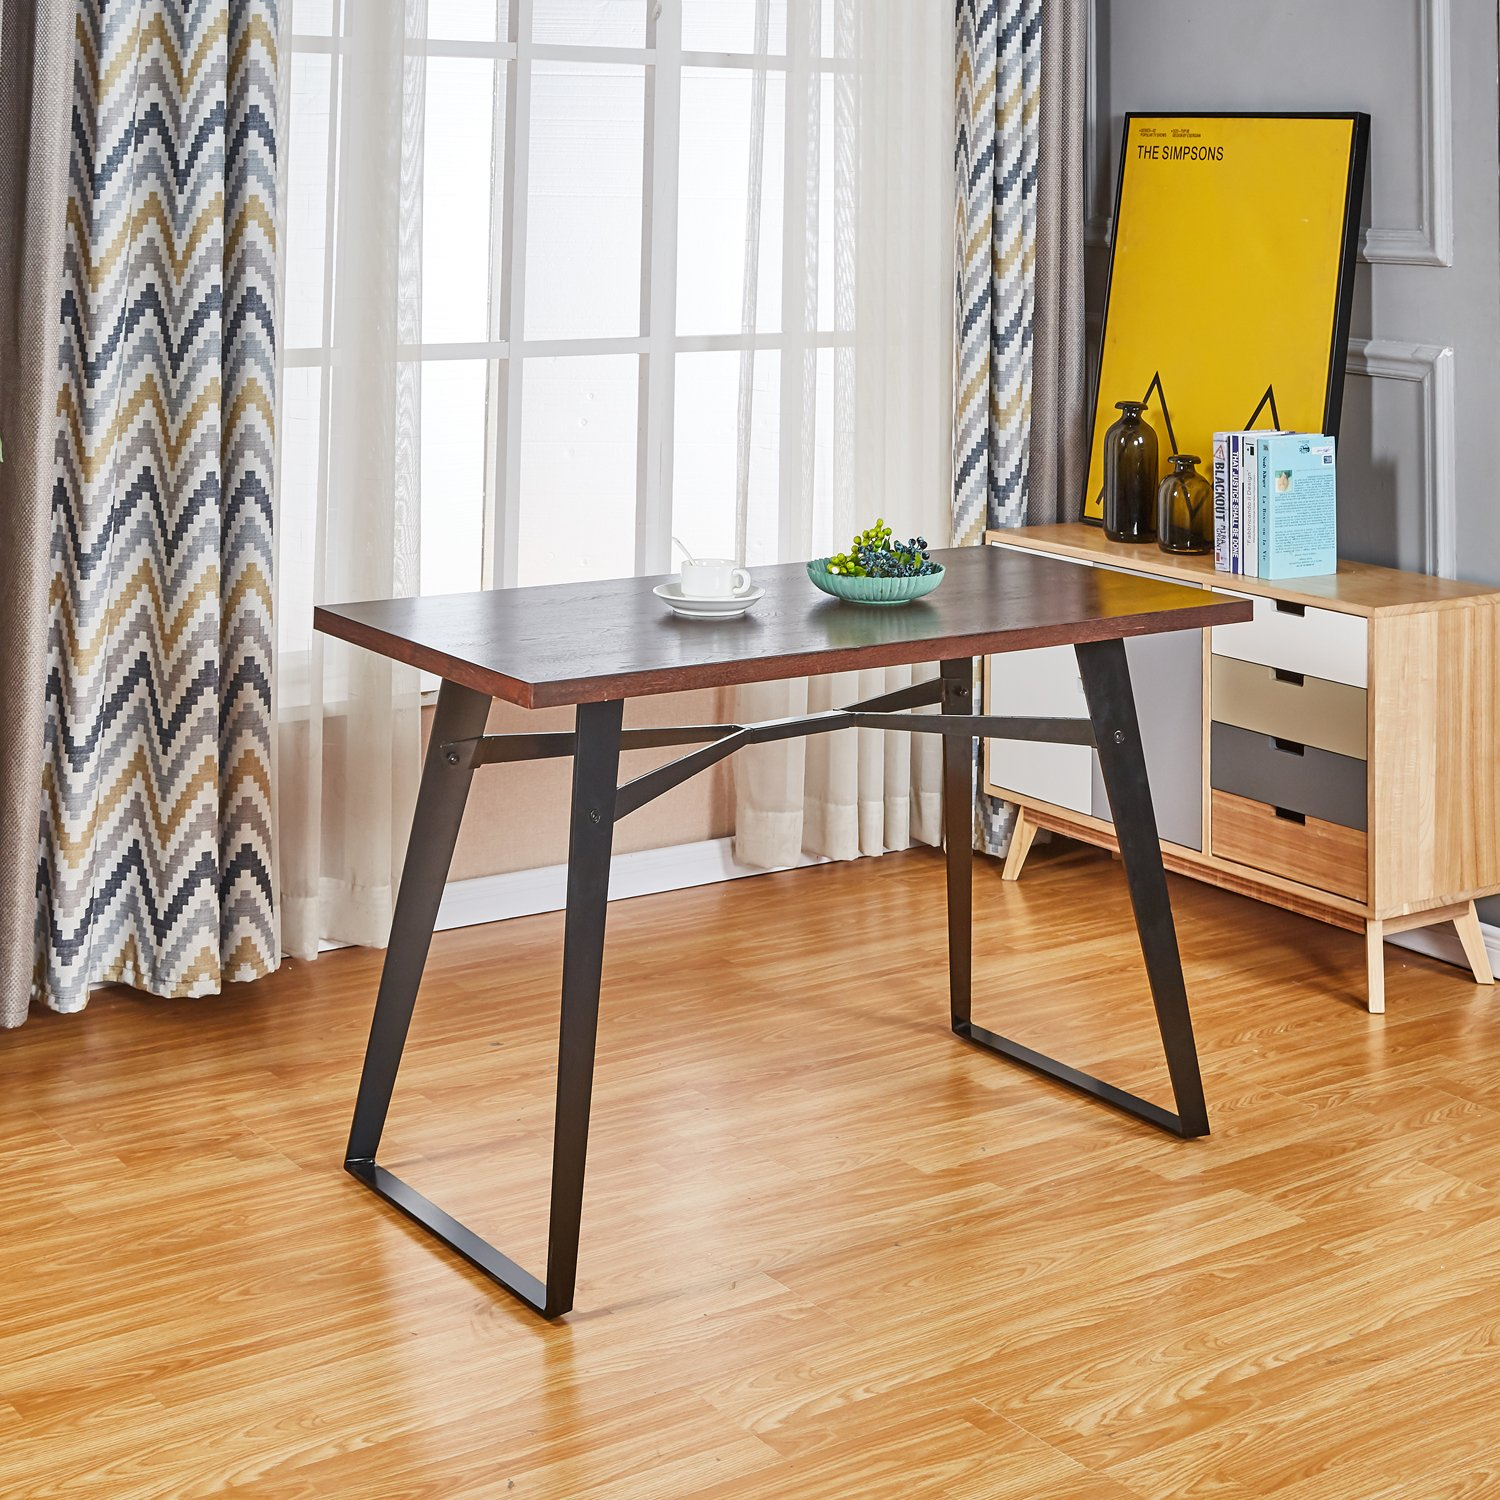 Modern Dining Table Kitchen Living Room Table New Dining Computer Home Office Desk Multi Use Rectangle Industrial Table Table